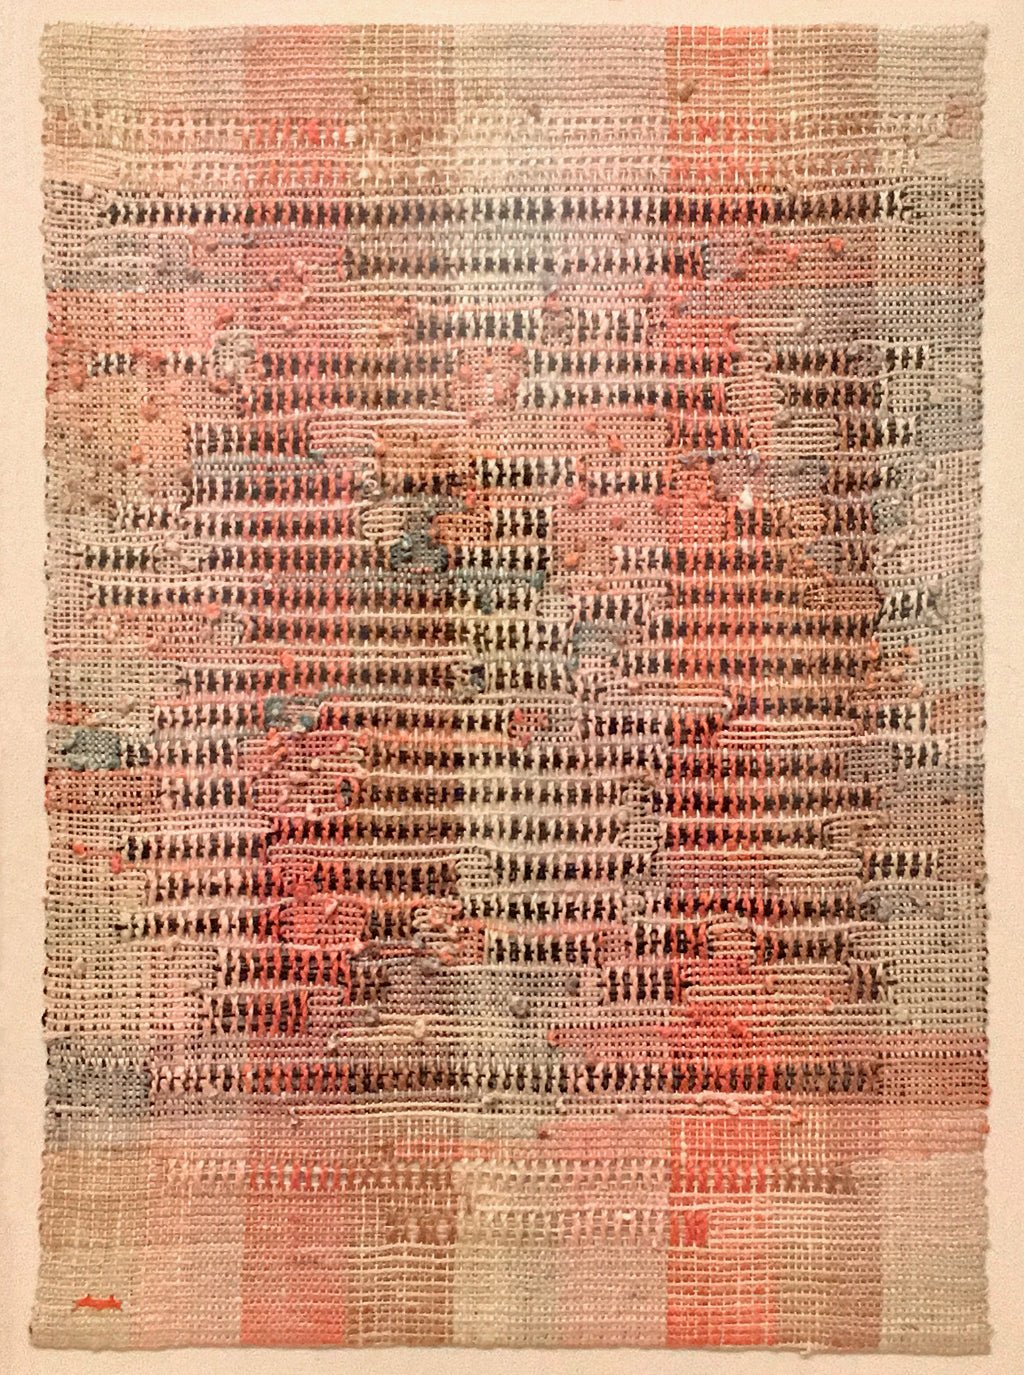 Anni Albers at Tate | Development in Rose II